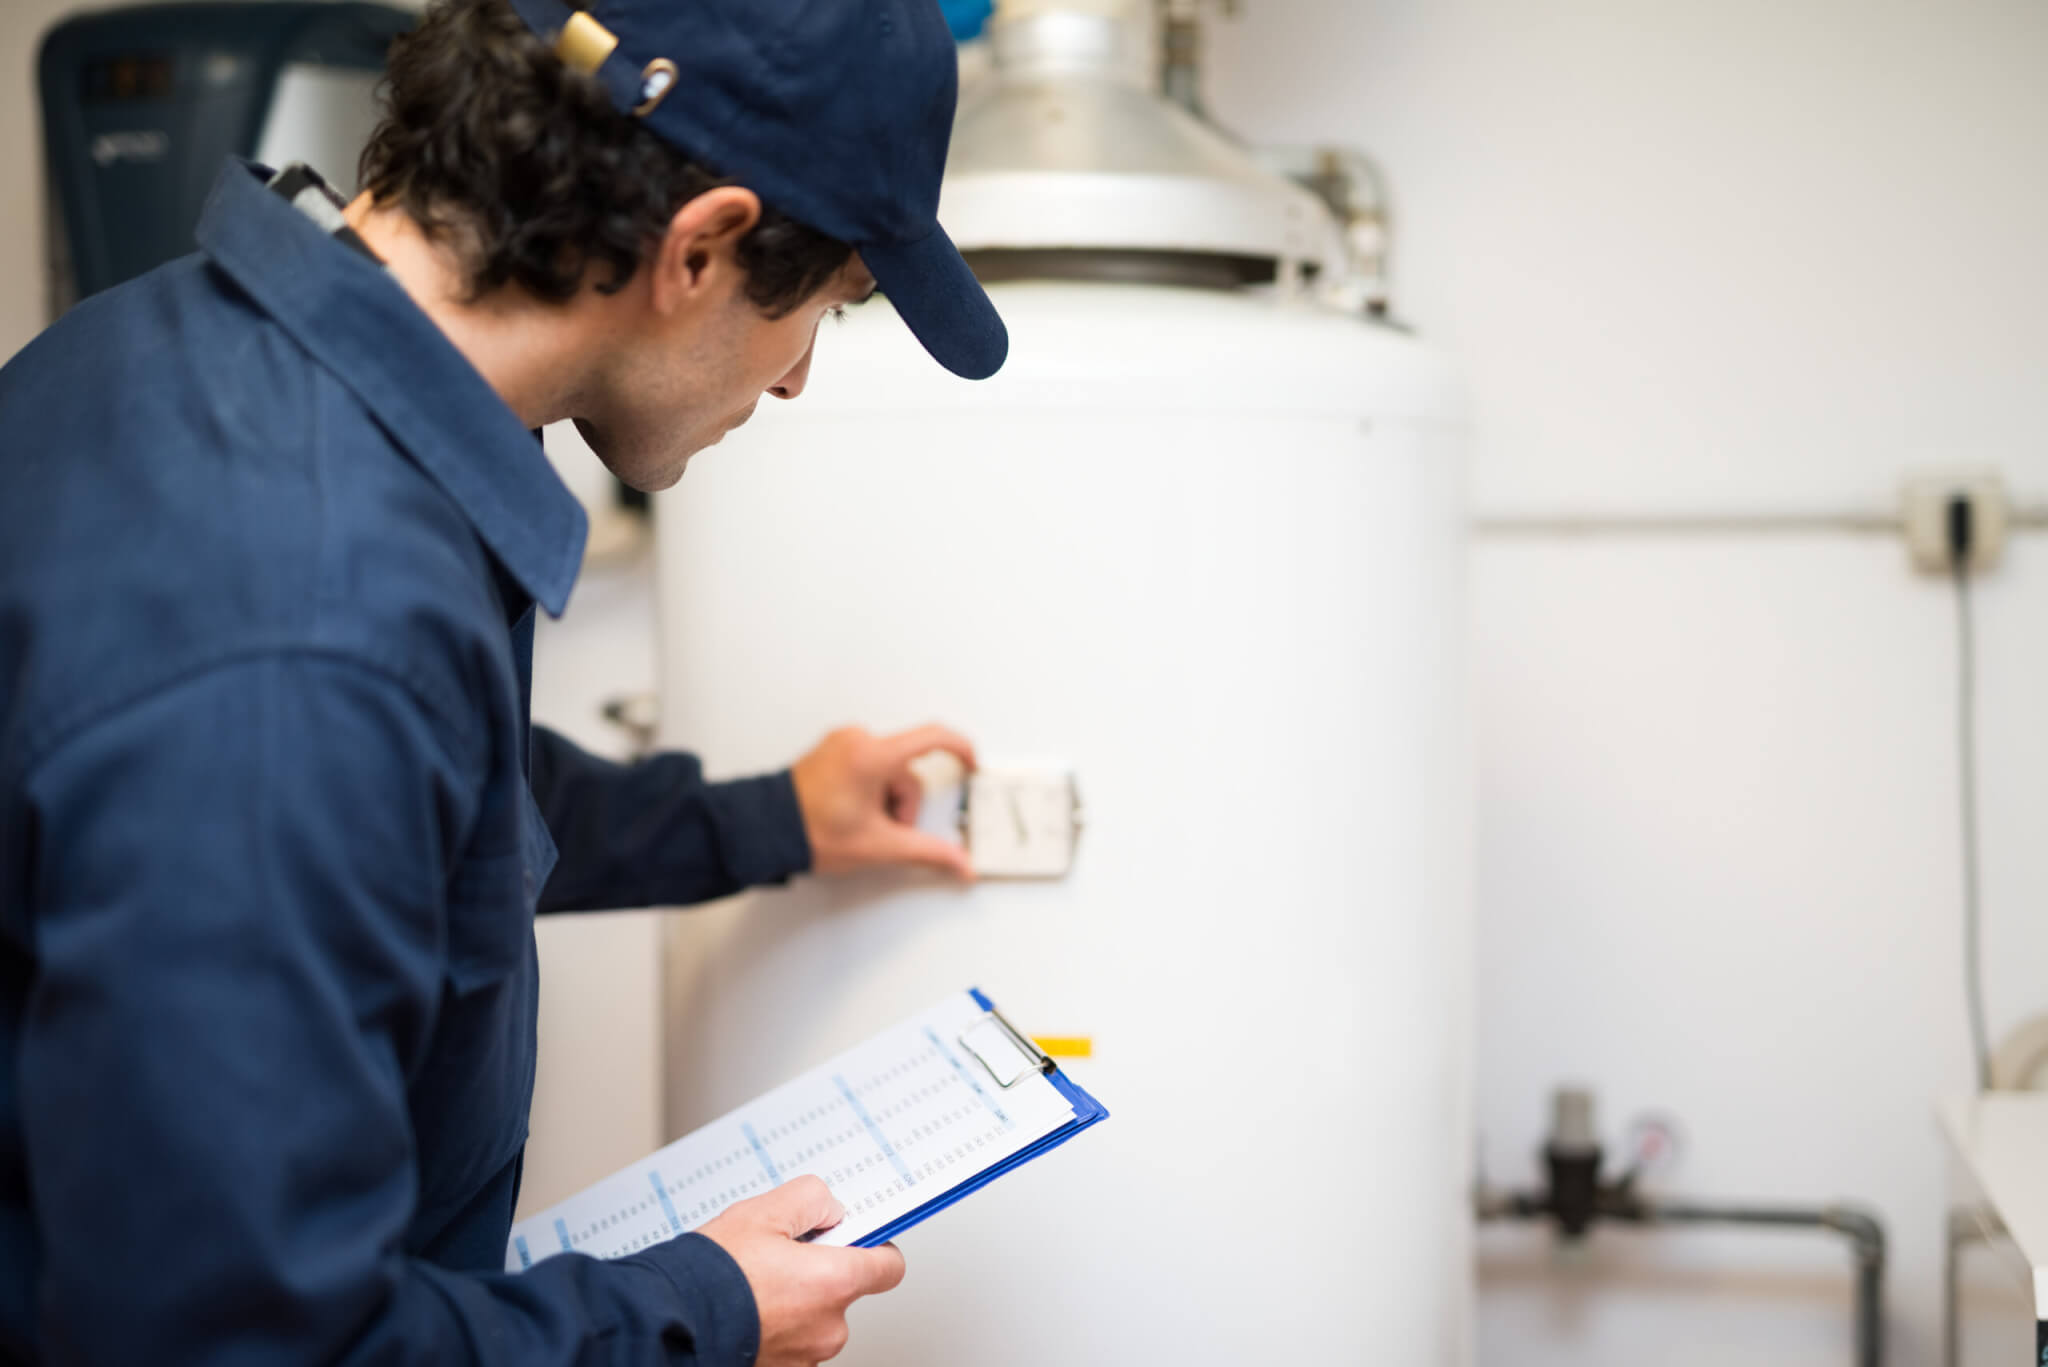 hot water heater repair with a home warranty